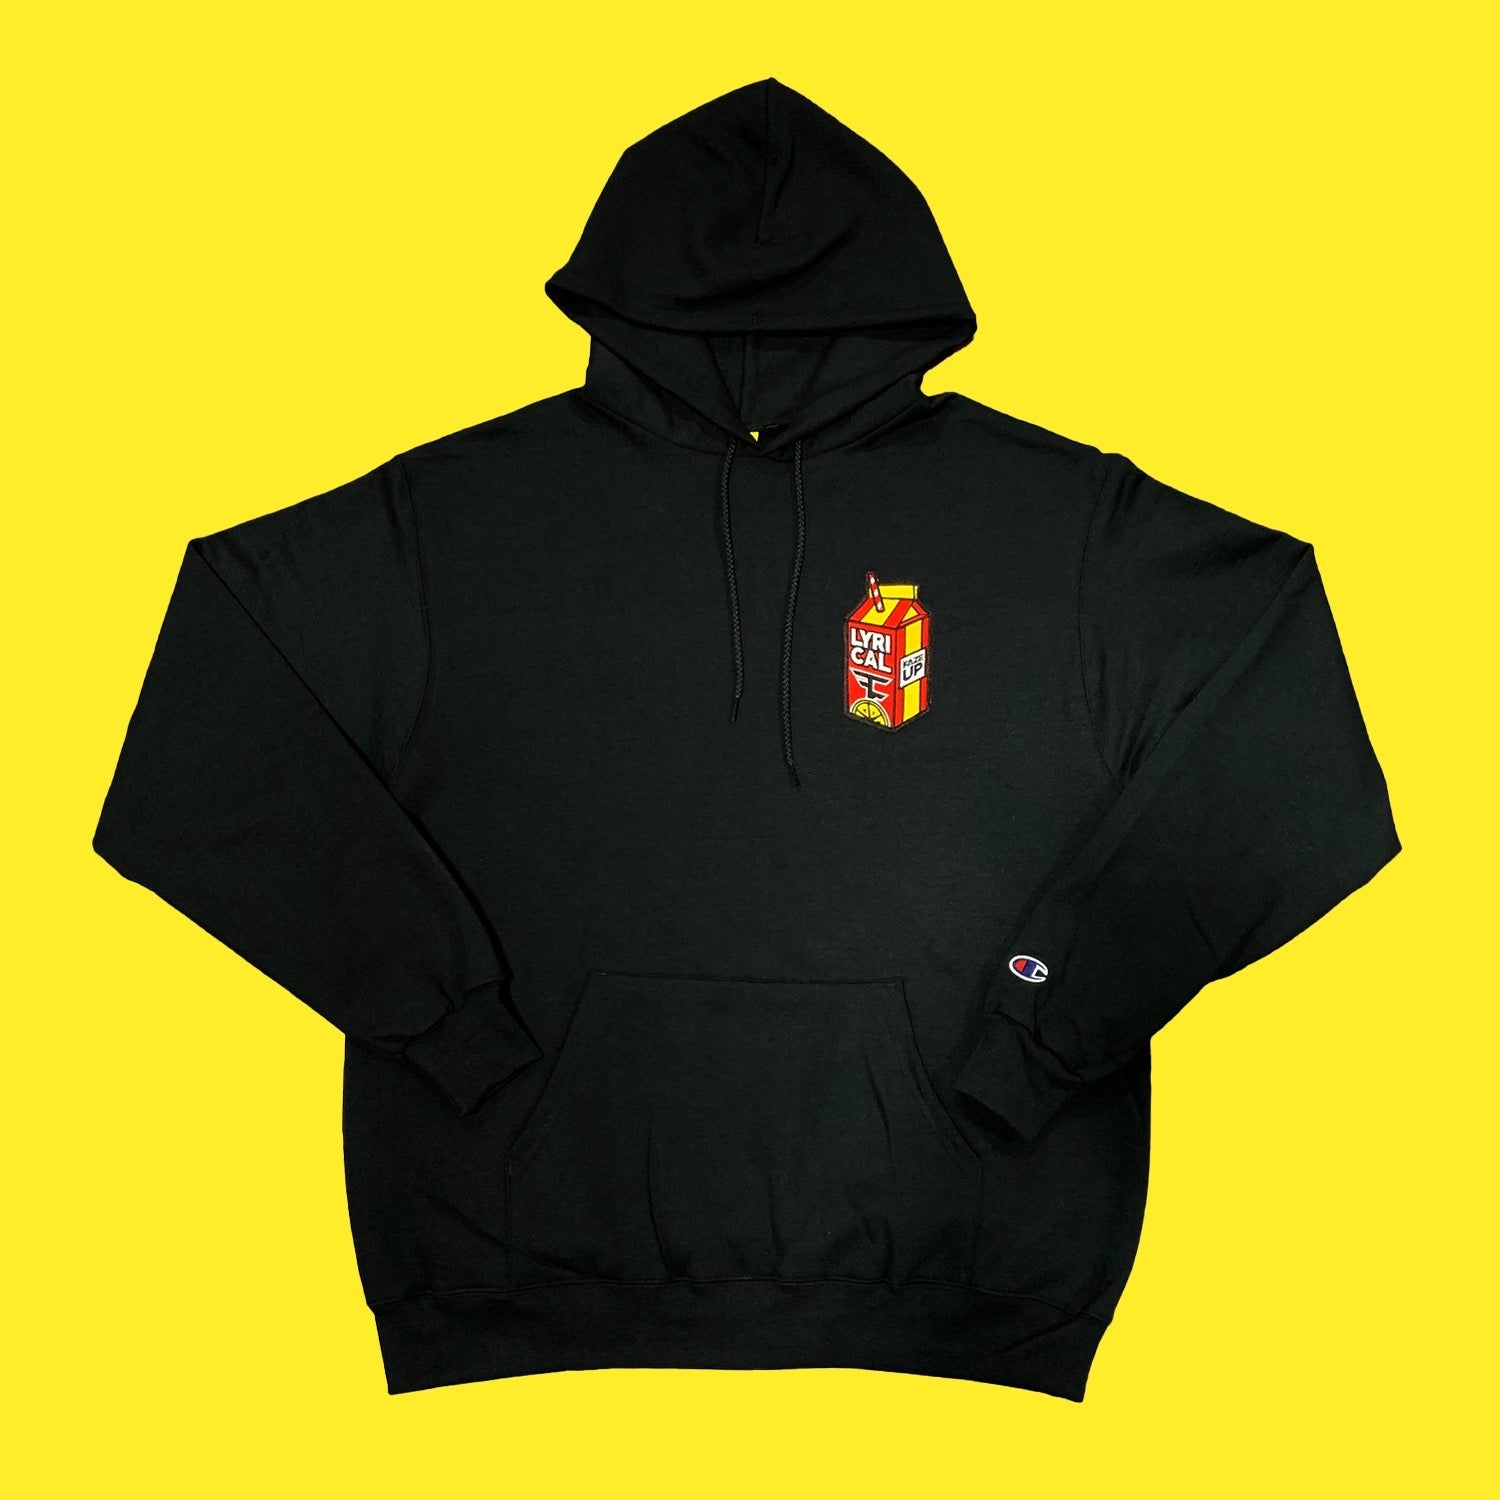 Lyrical Lemonade x FaZe Carton Hoodie in Black